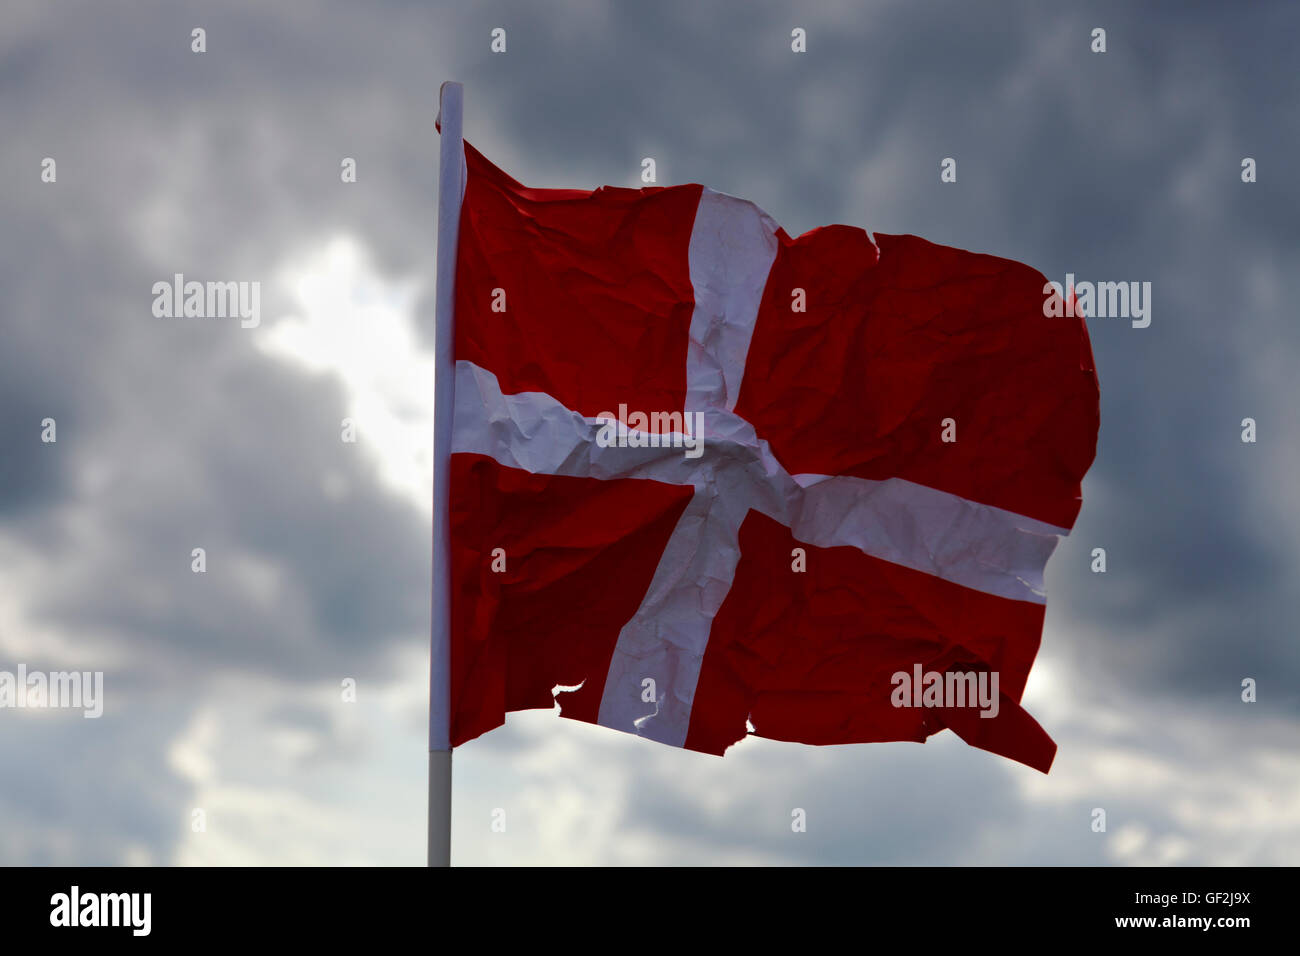 A crumpled and torn paper Dannebrog flag, the Danish flag against dark clouds. Close to being the happiest people? Stock Photo